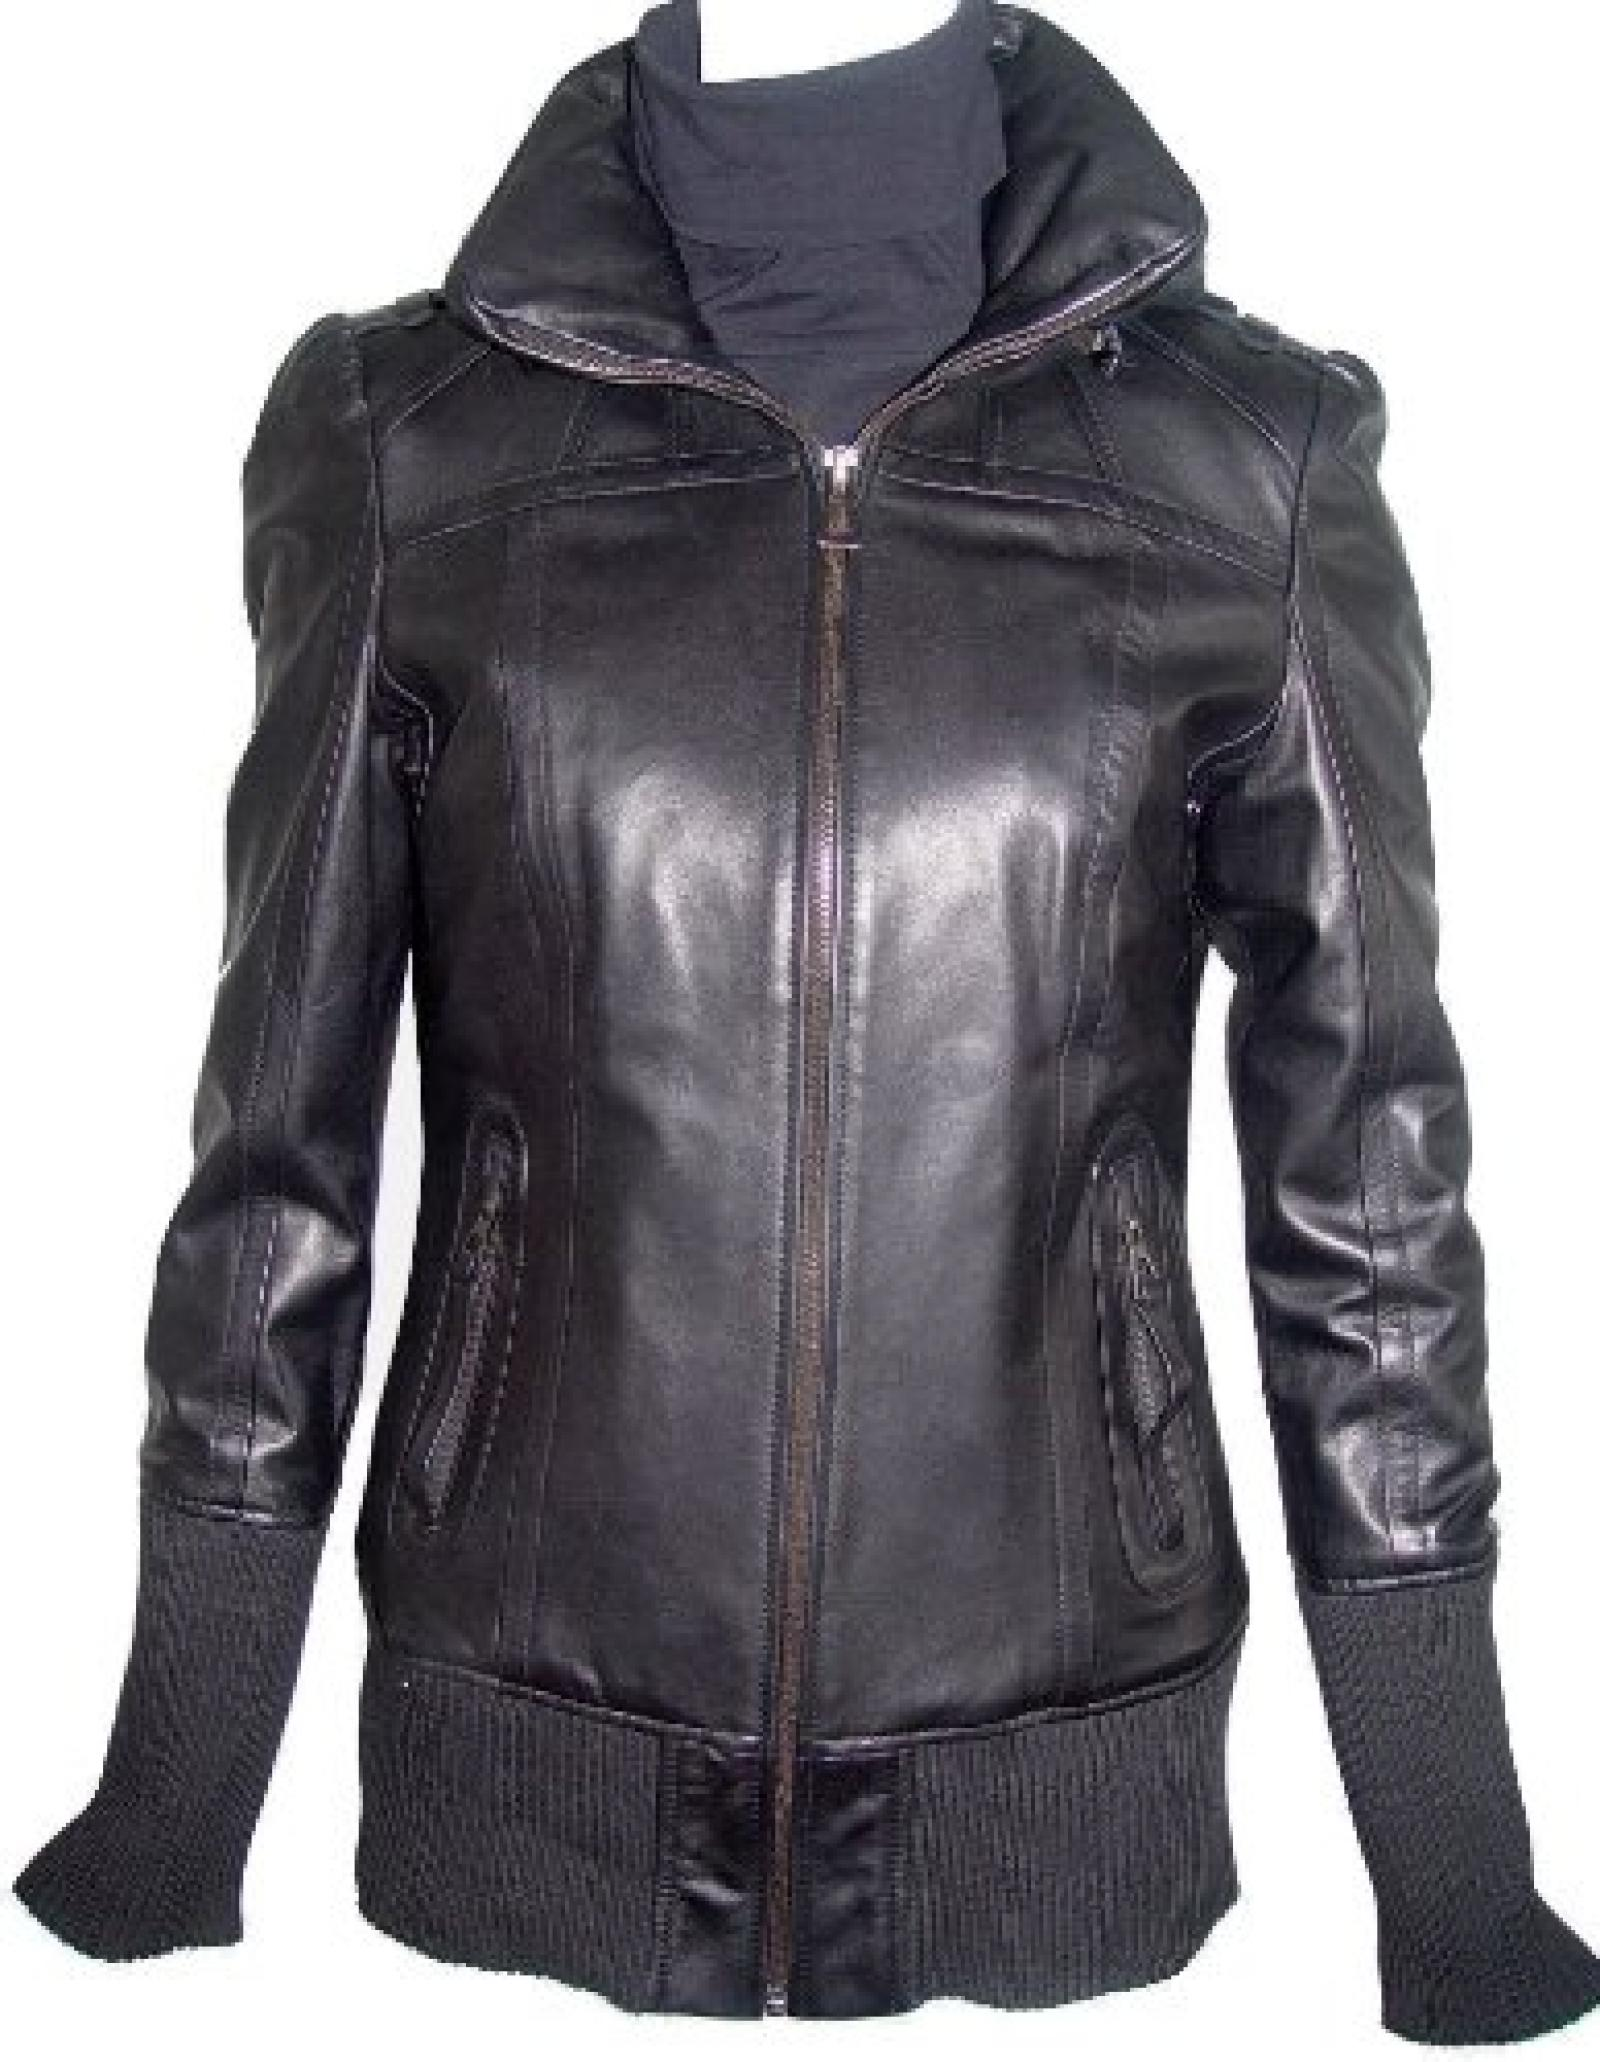 Paccilo FREE tailoring Womens 4021 Plus Size Short Leather Jacket